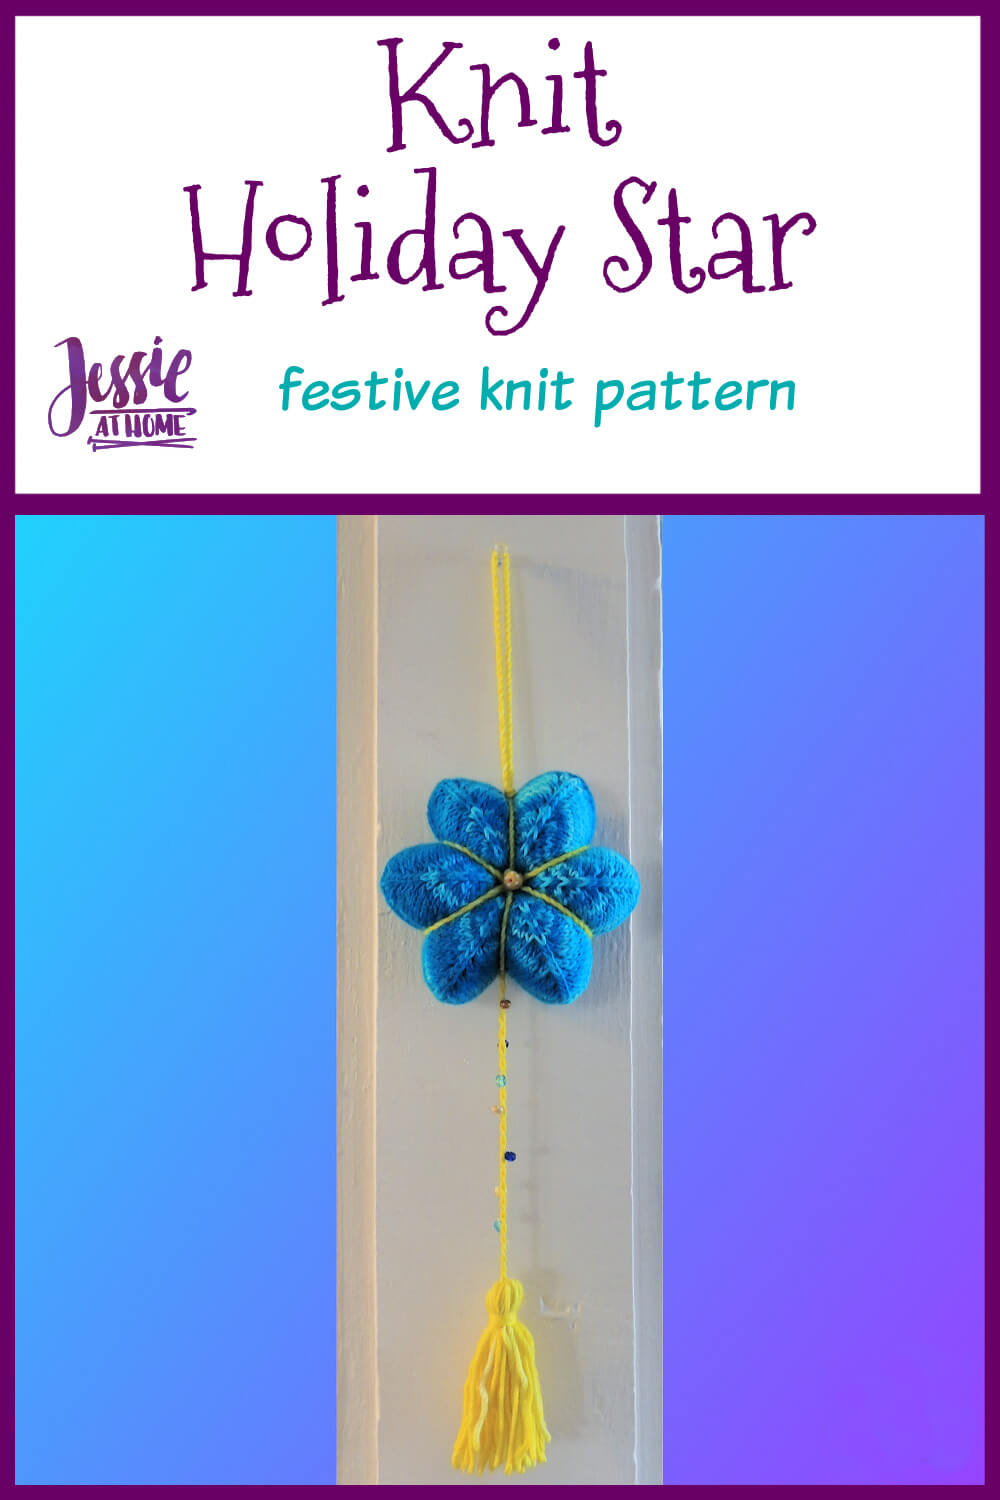 Knit Holiday Star - Shine On This Holiday Season!